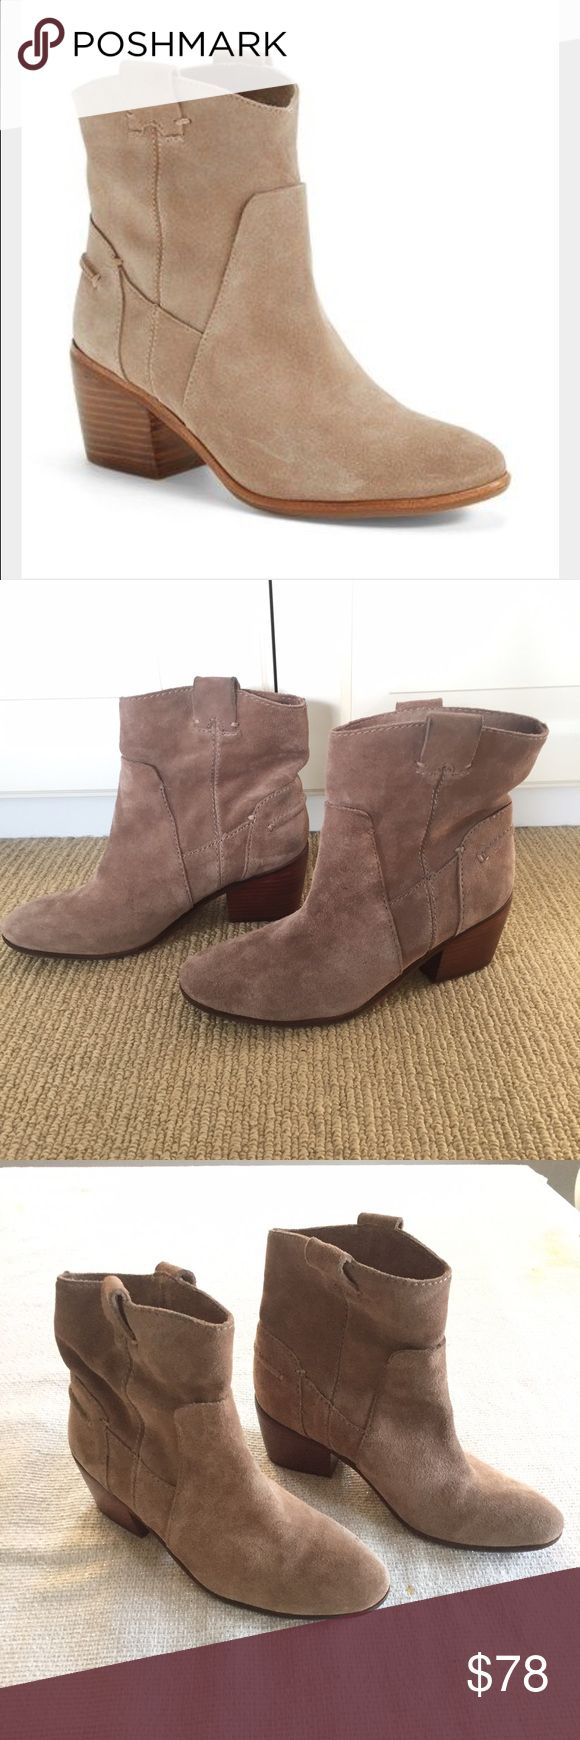 Vince Camuto Maves Booties The popular Maves suede booties, now sold out everywhere. First photo from the Nordstrom site, where they retailed for $158.99. Mushroom colored suede. Very light wear, still in great condition. Approx 2.5 inch stacked chunky heel. Side pull tabs. These boots are actually a 7.5 (37.5) but run small, so would best fit a size 7. Fast shipping/all FIVE STAR reviews!! Vince Camuto Shoes Ankle Boots & Booties